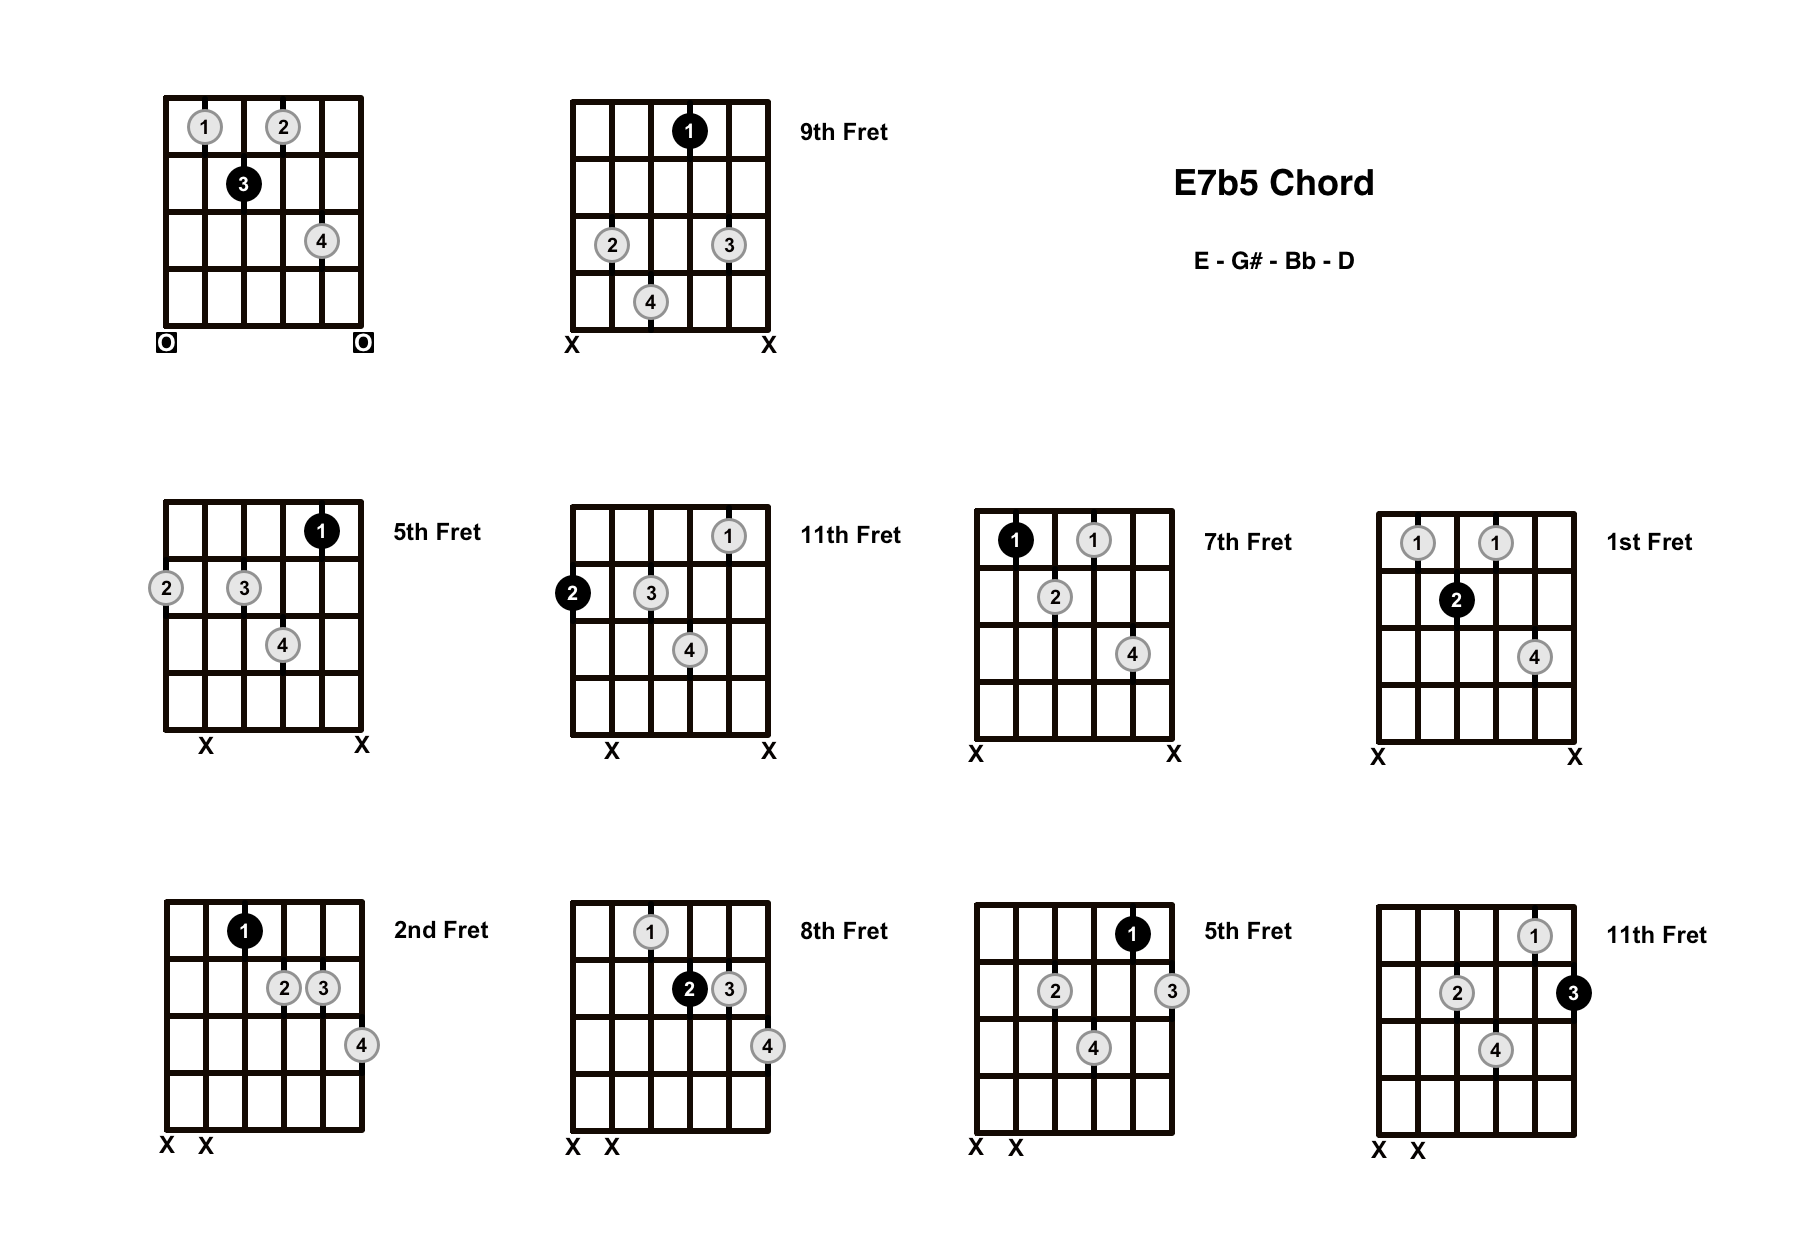 E7b5 Chord On The Guitar (E Dominant 7 Flat 5) – Diagrams, Finger Positions and Theory